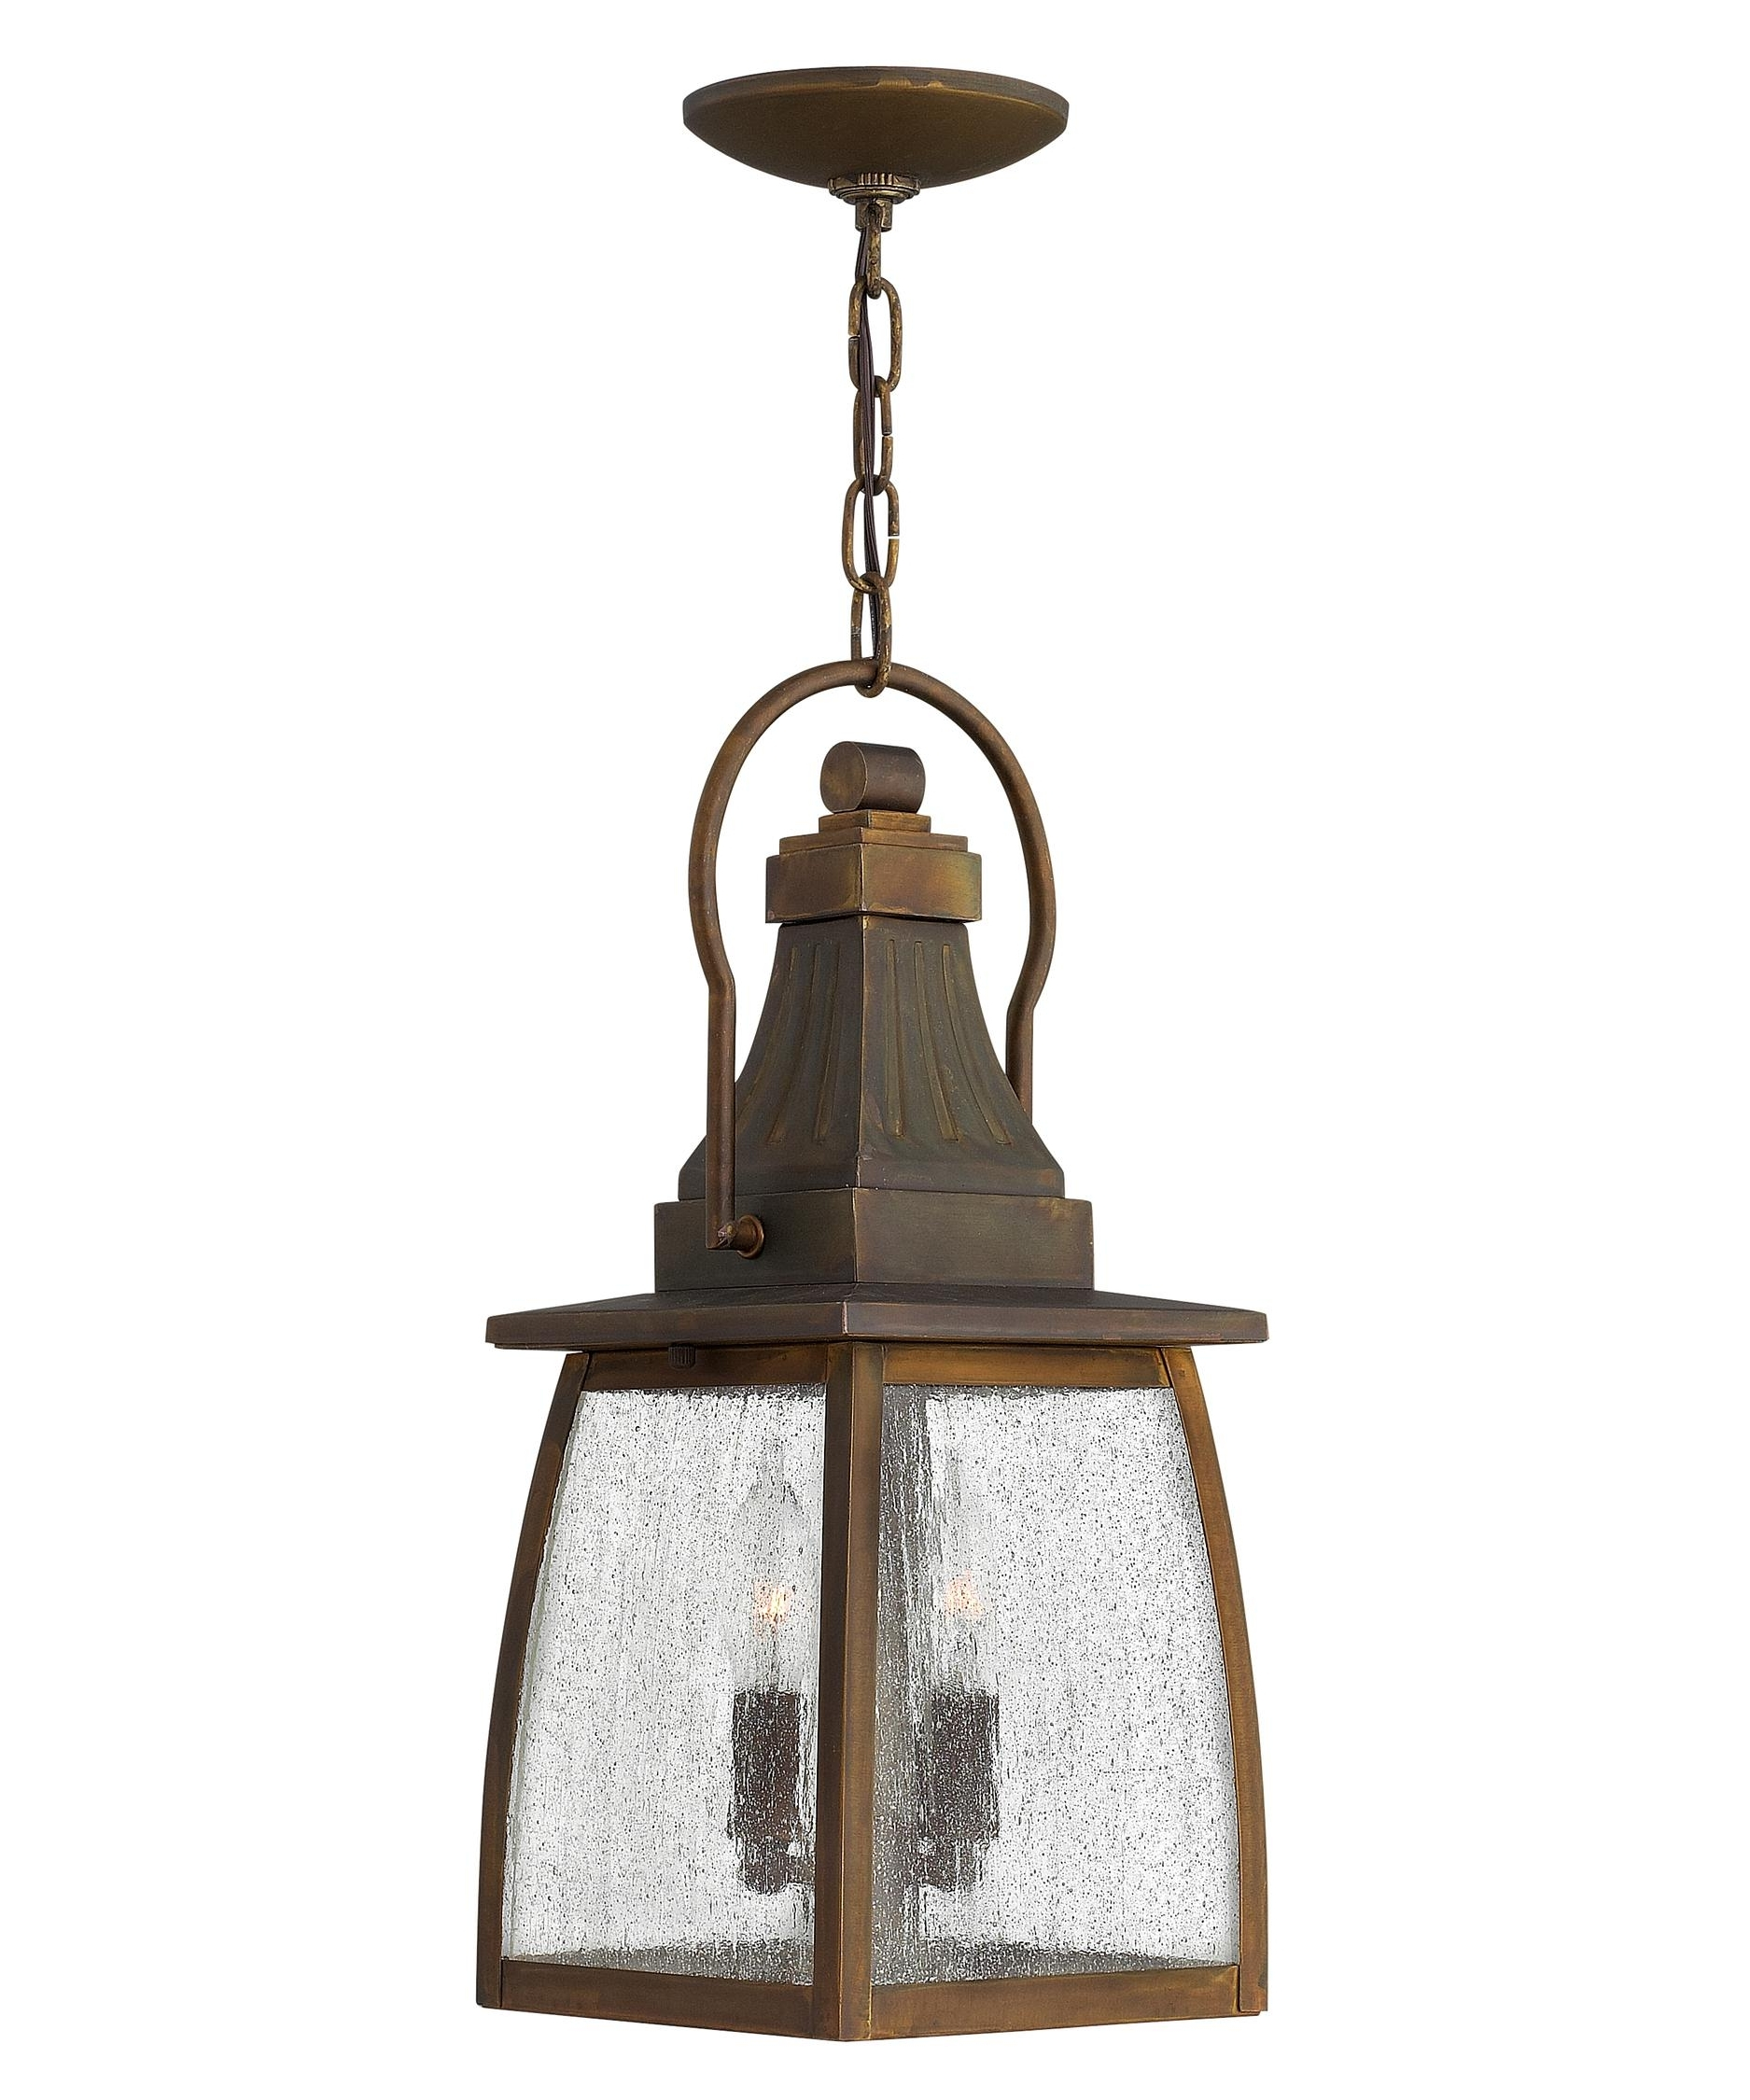 Led Outdoor Hanging Lanterns Throughout Widely Used Hinkley Lighting 1202 Montauk 7 Inch Wide 2 Light Outdoor Hanging (Gallery 16 of 20)